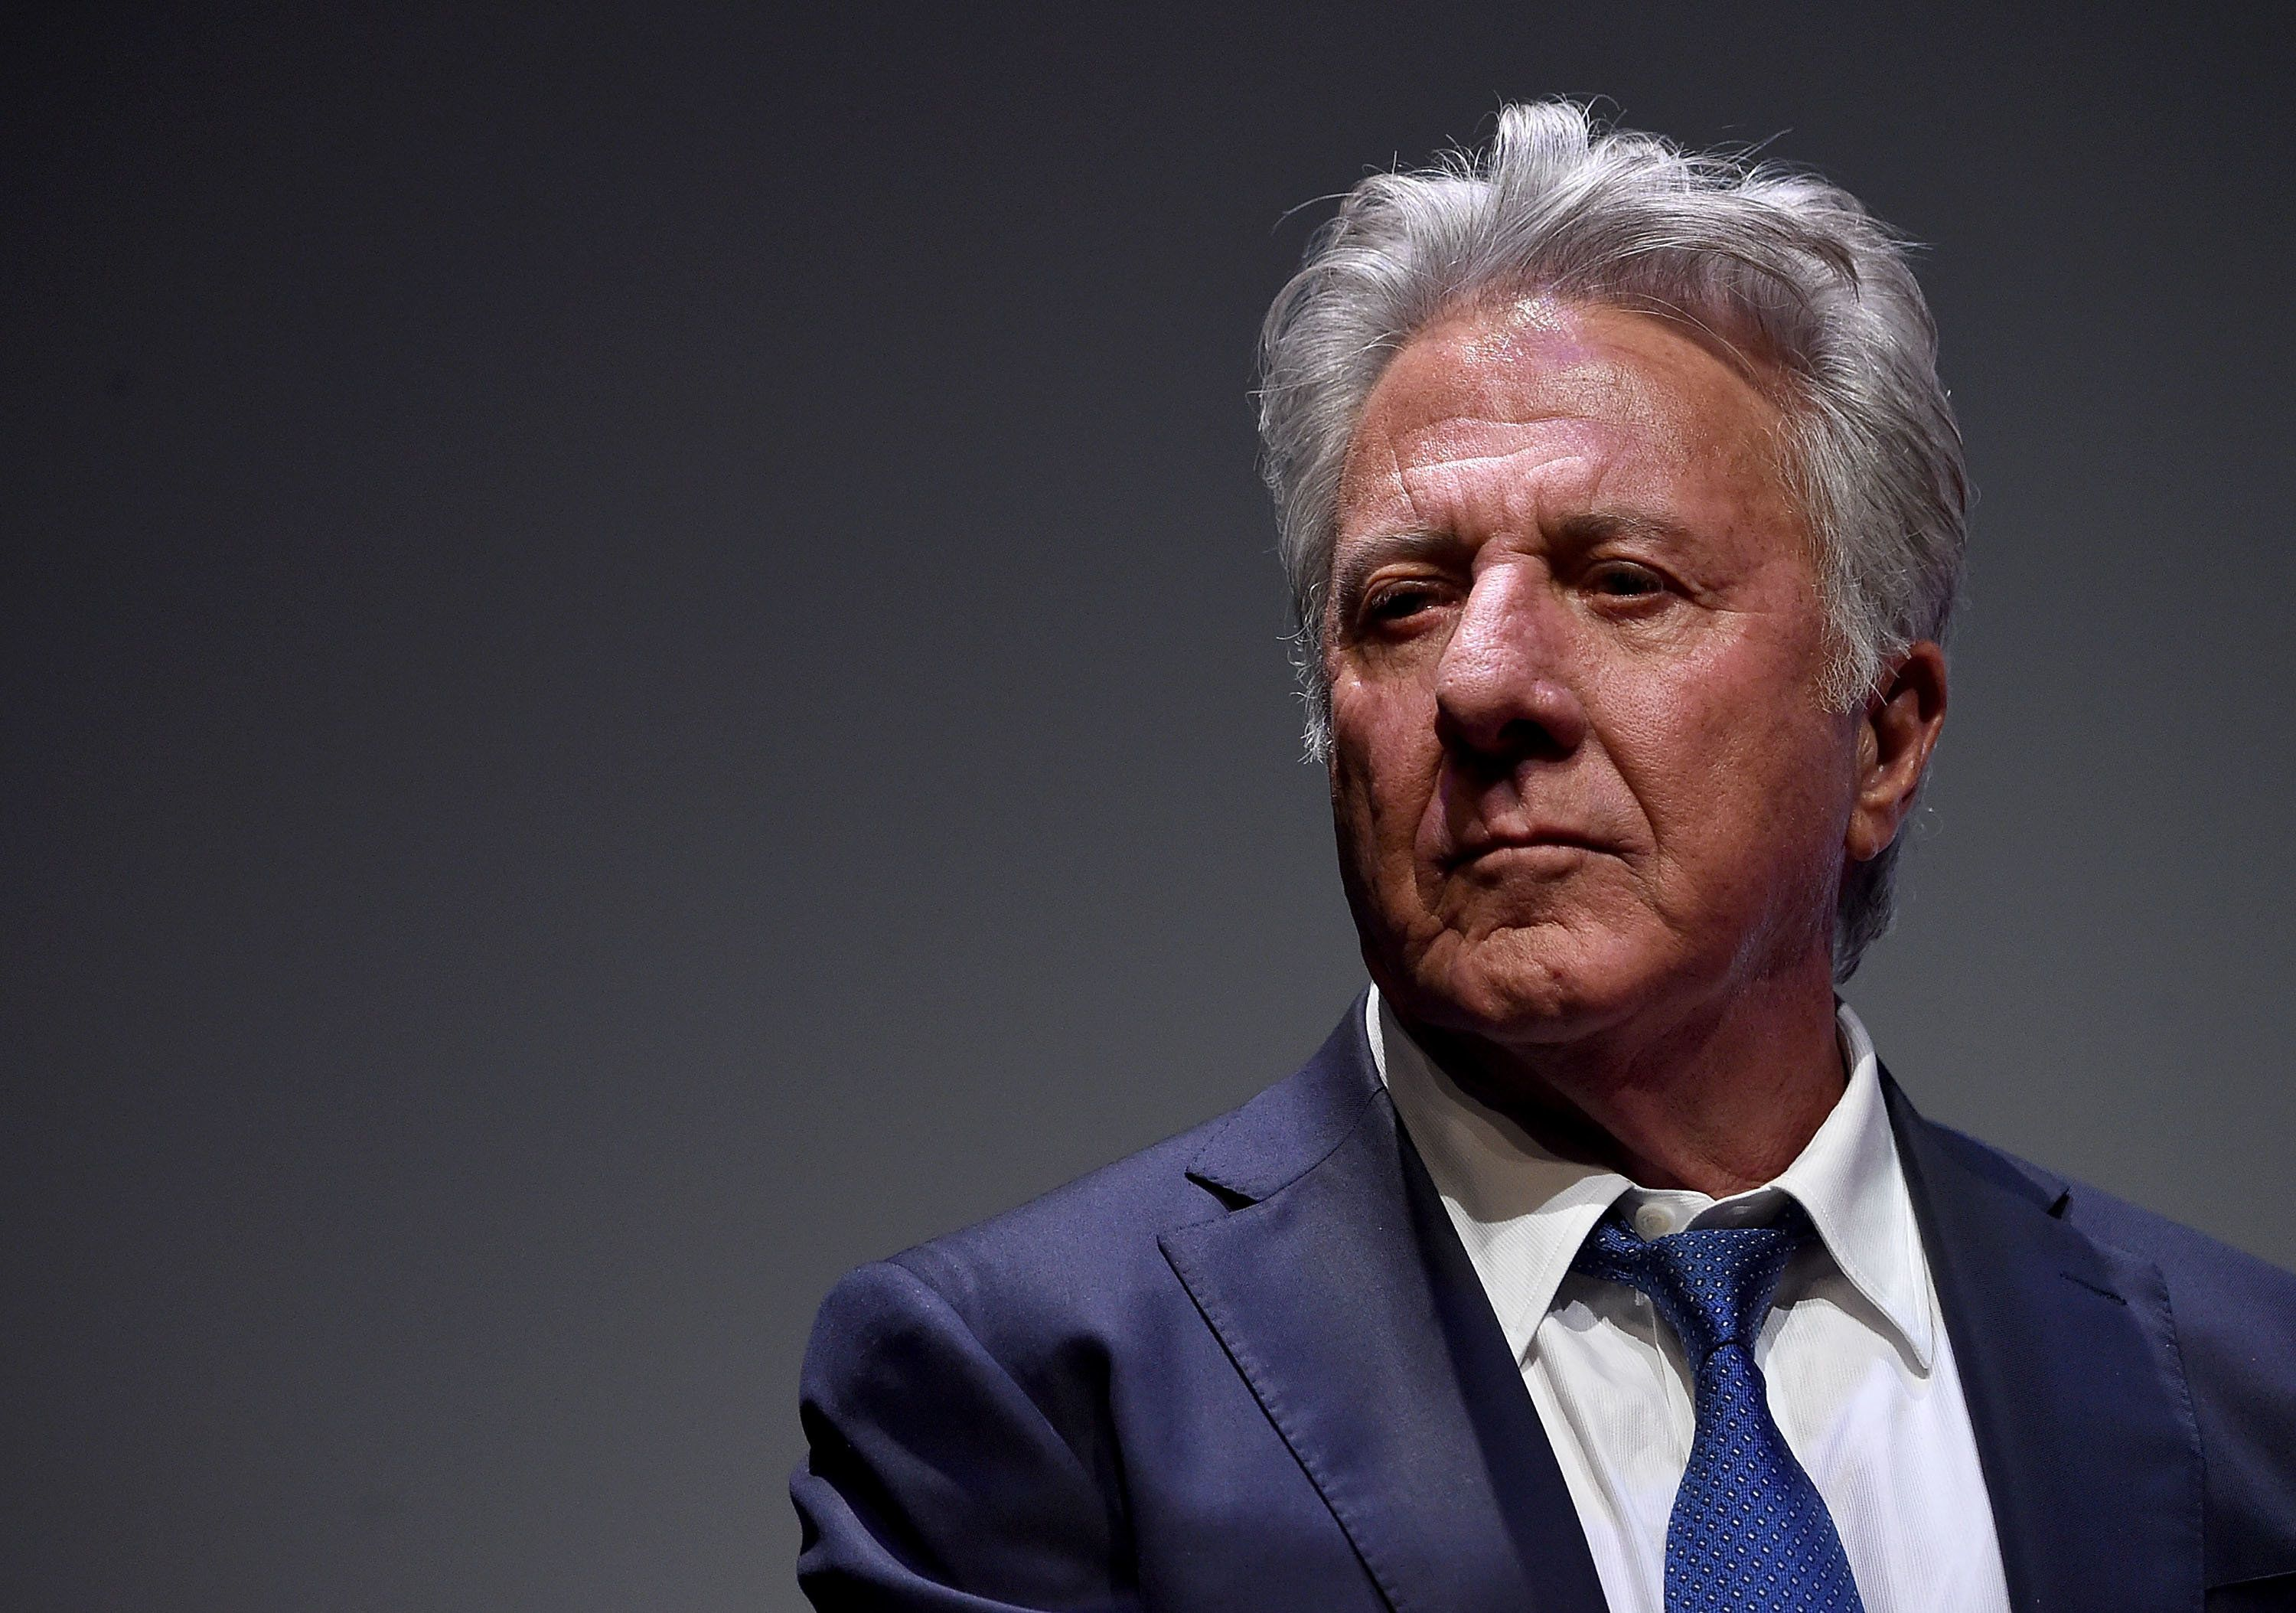 Dustin Hoffman faces sexual misconduct claims from three more women